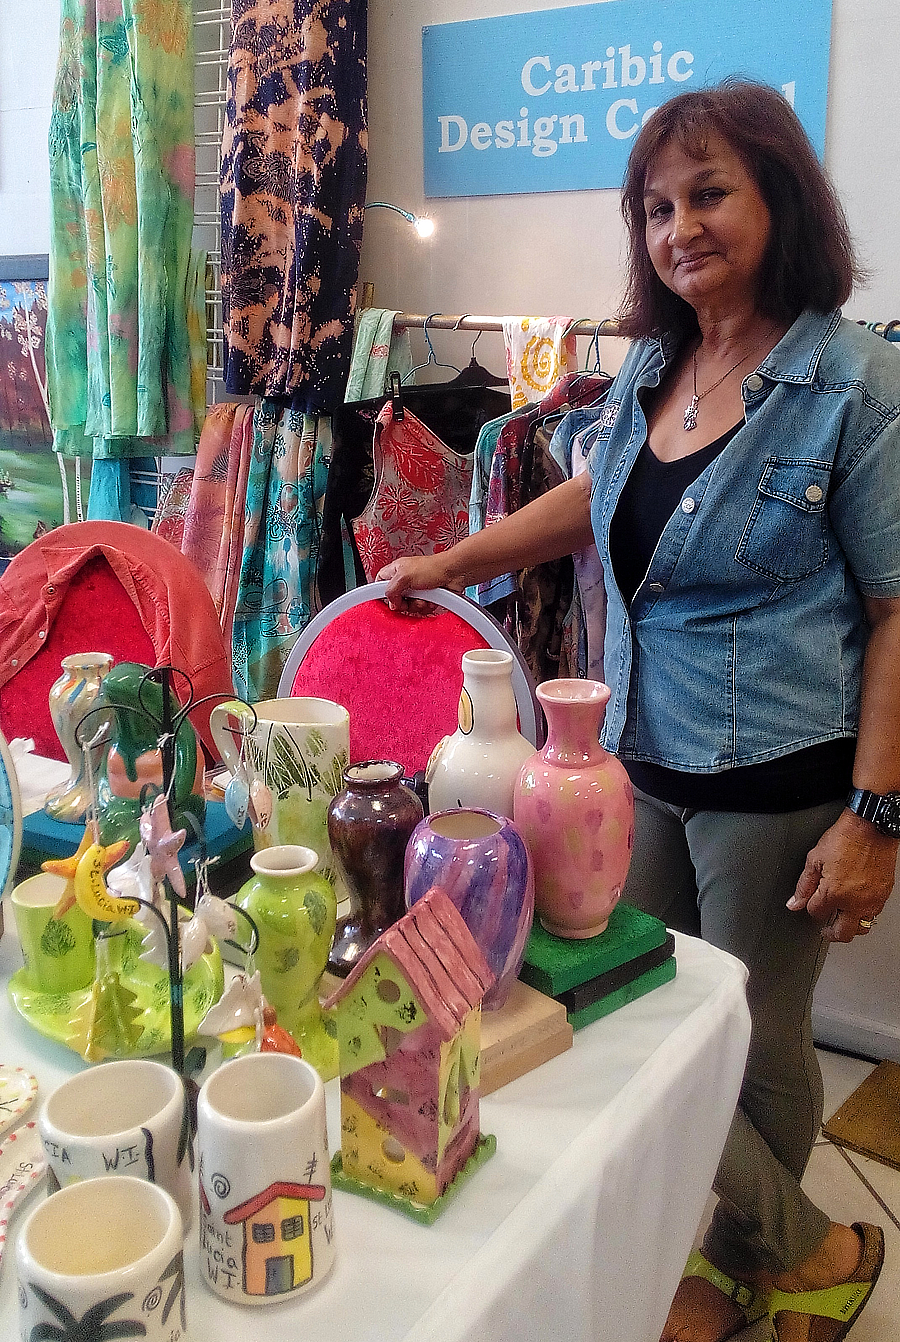 urmie persaud caribic design ceramics, live mindfully upcycled clothing, buy saint lucian products, shopping in saint lucia, authentic crafts